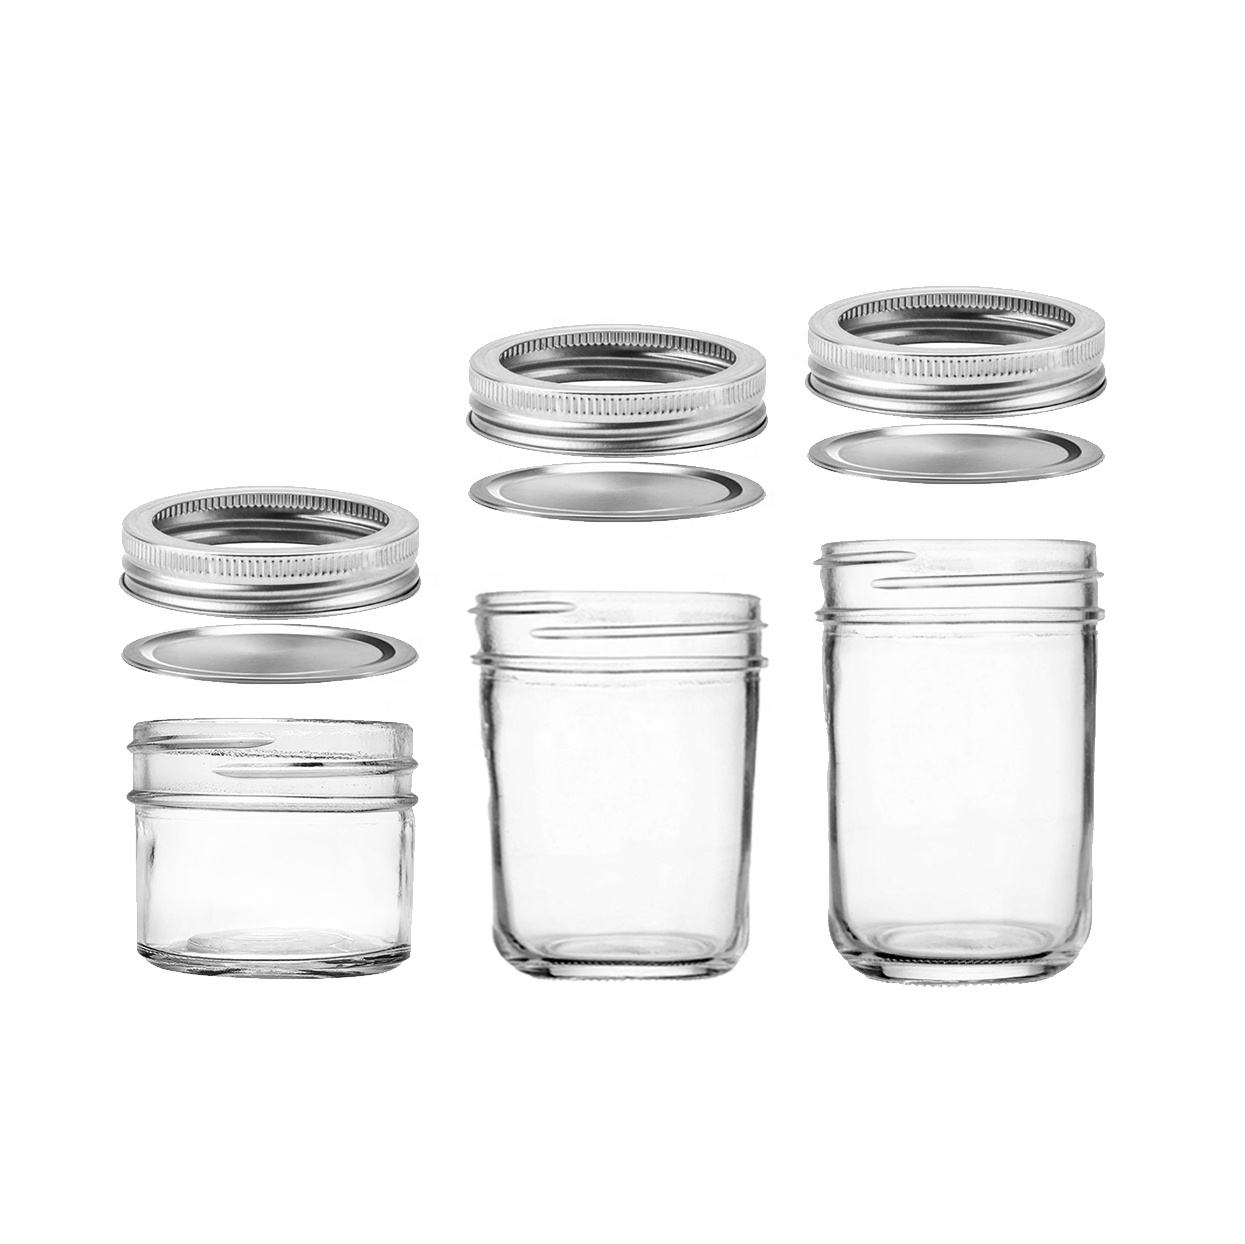 4 oz 6oz 8 oz 12oz 16 oz 20oz 700ml Wide Mouth Food Juice Boba Tea Glass Mason Jar